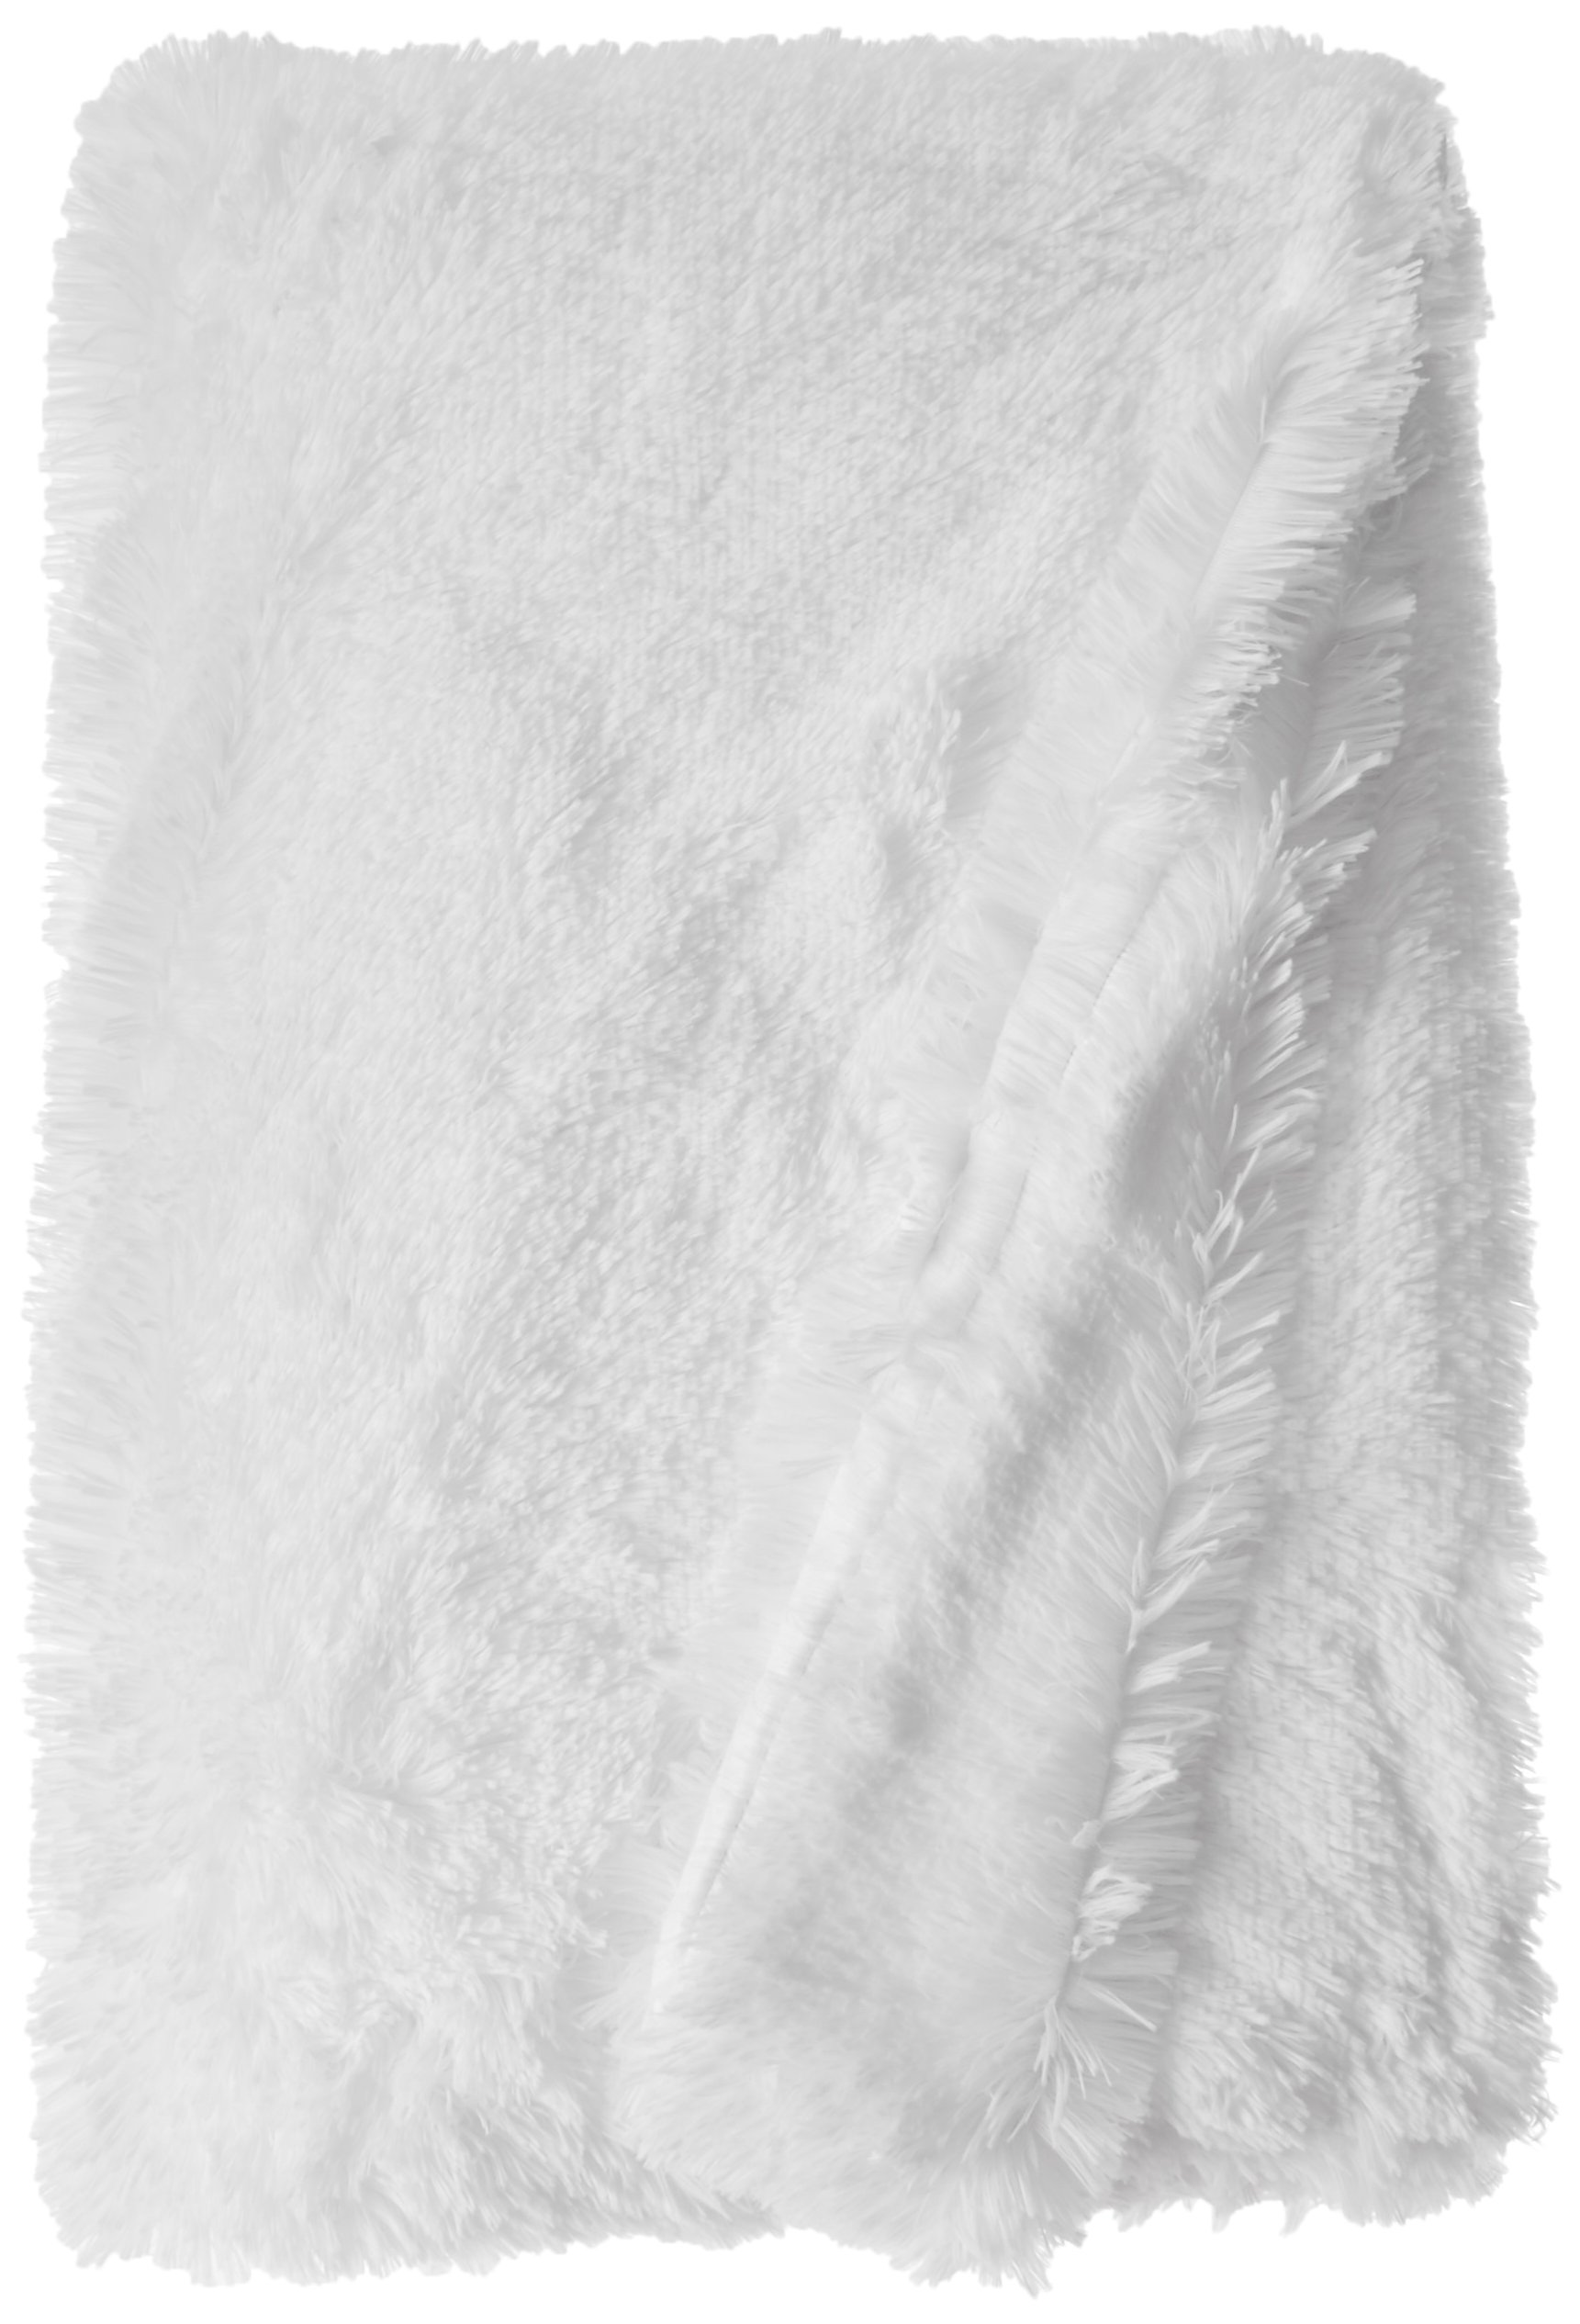 BESSIE AND BARNIE Pet Blanket, X-Large, Snow White/Snow White without Ruffle